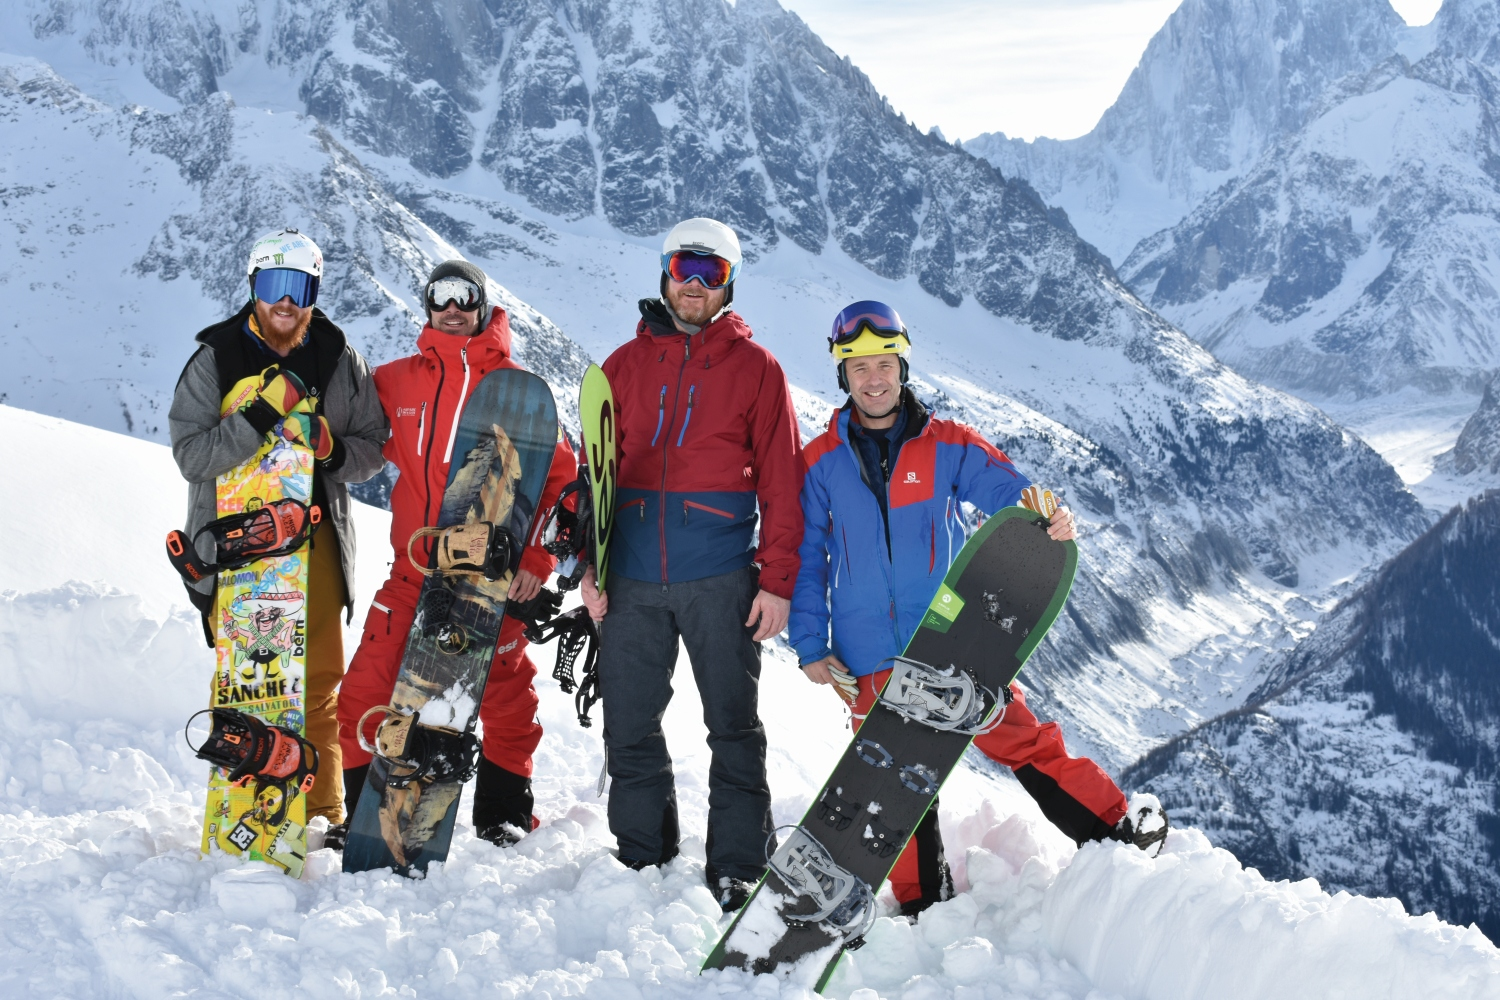 Group_ski_trip_Chamonix_Fance_CREDIT_Mike_Walker.JPG